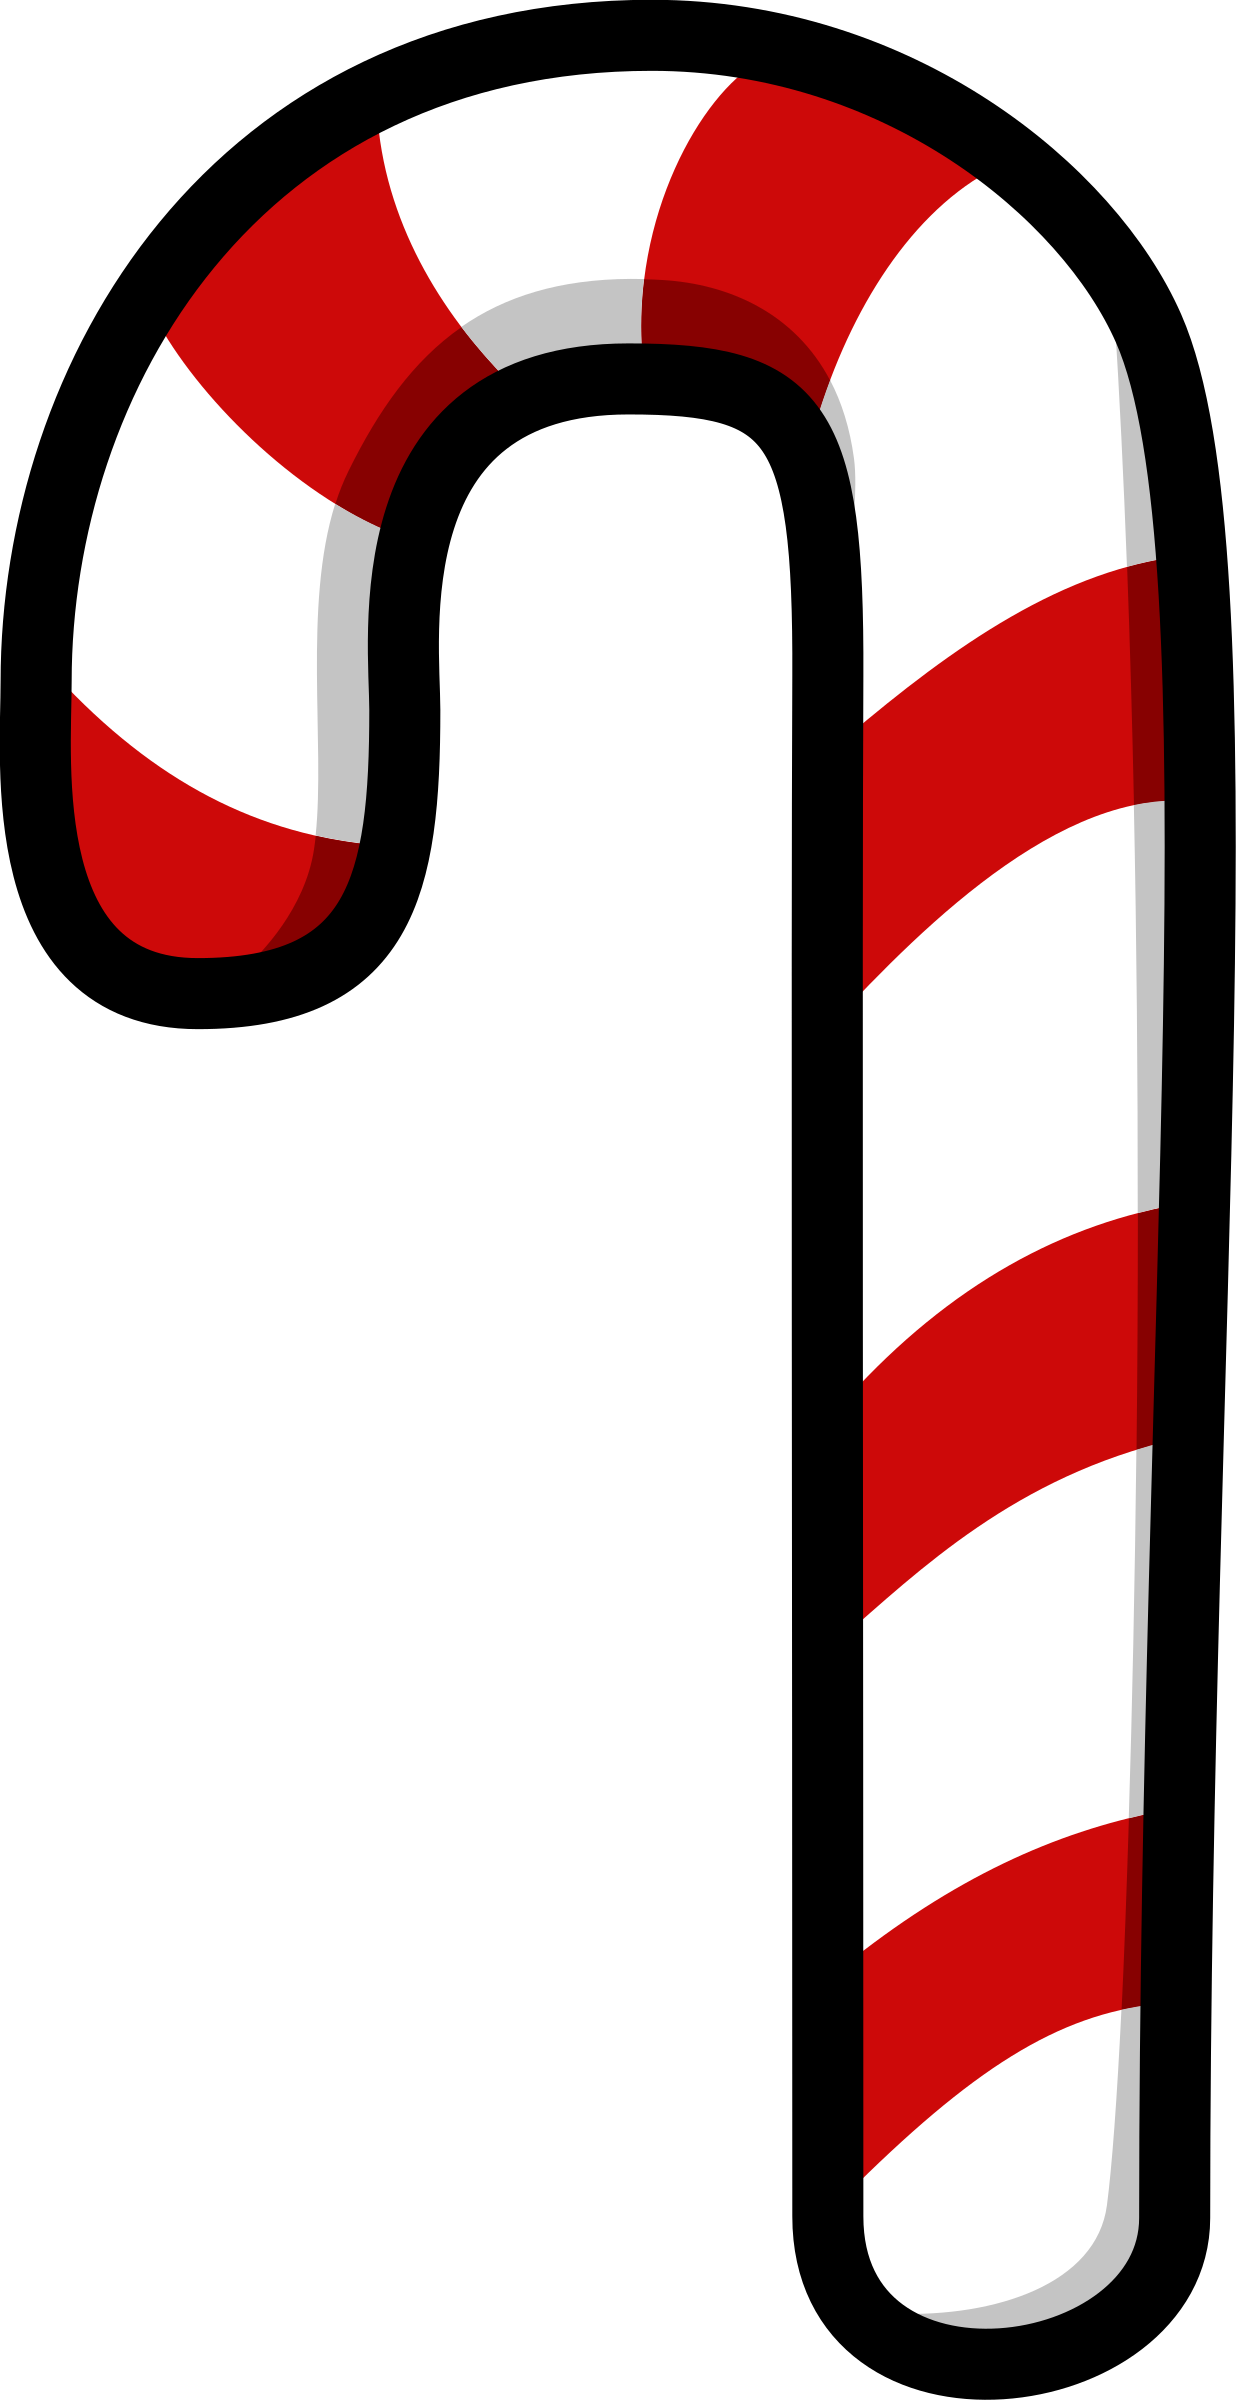 Clipart - Candy Cane .